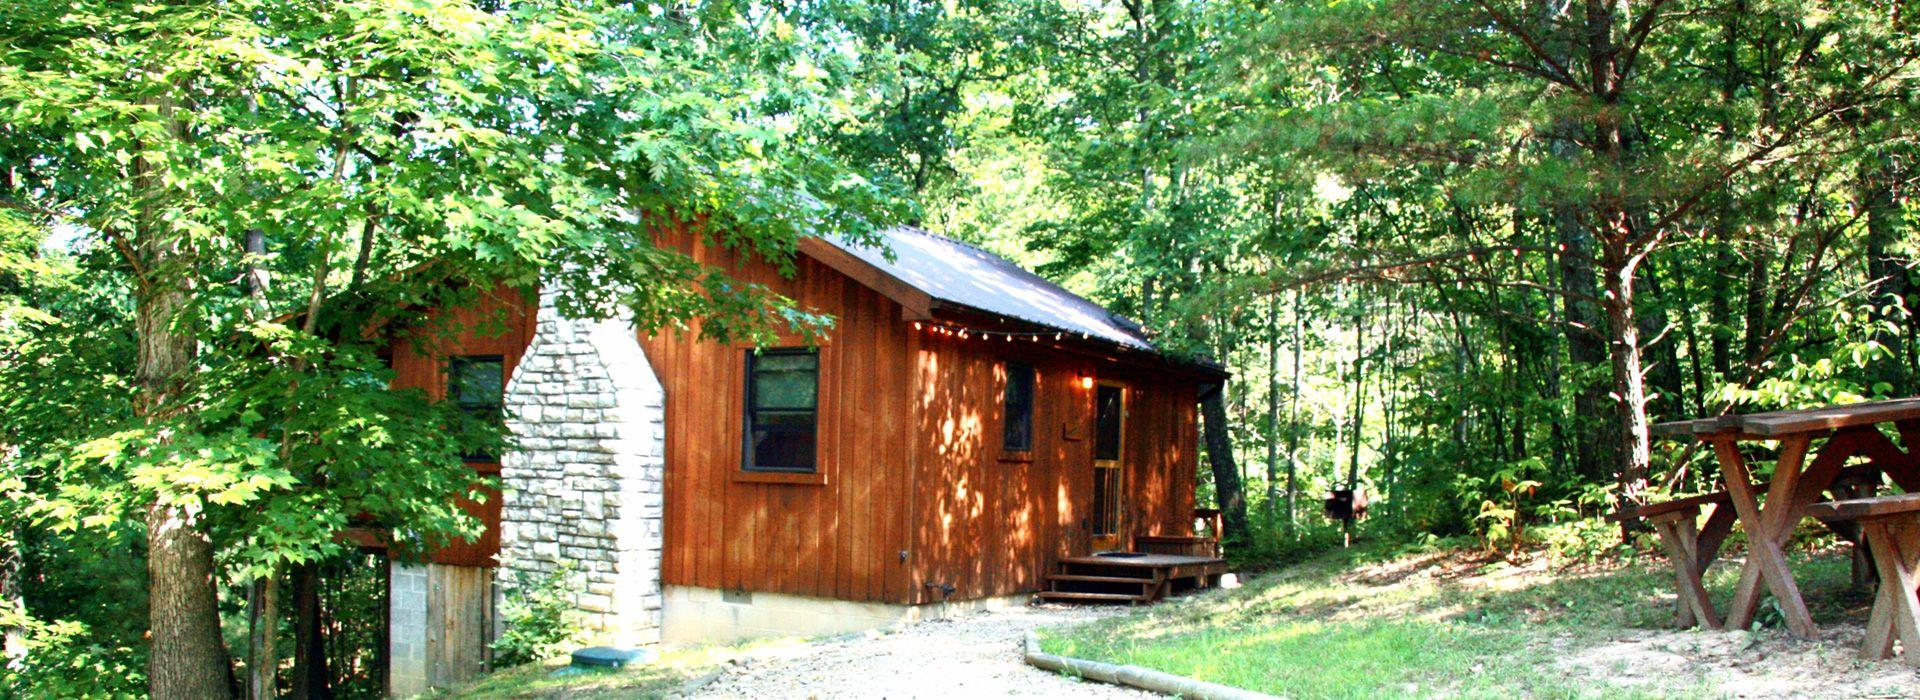 Rates and Policies Hocking hills Cabins